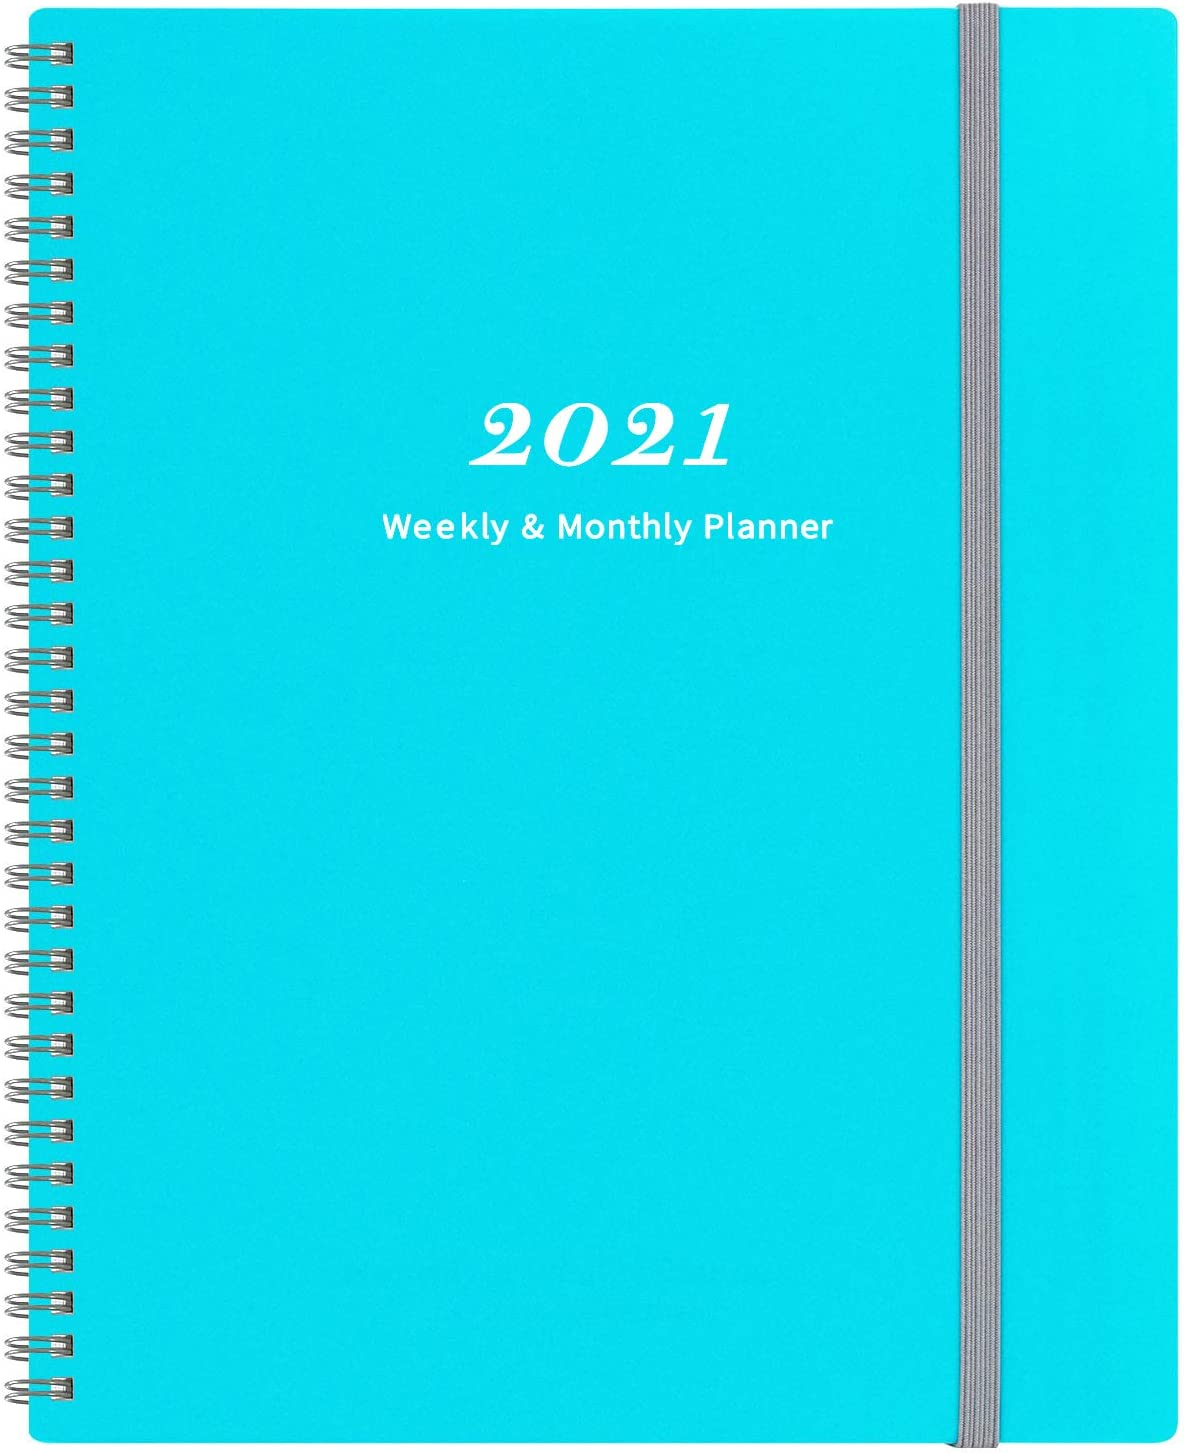 """2021 Planner - Weekly & Monthly Planner with Tabs 9"""" x 11"""", Elastic Closure and Thick Paper, Back Pocket with 21 Notes Pages"""